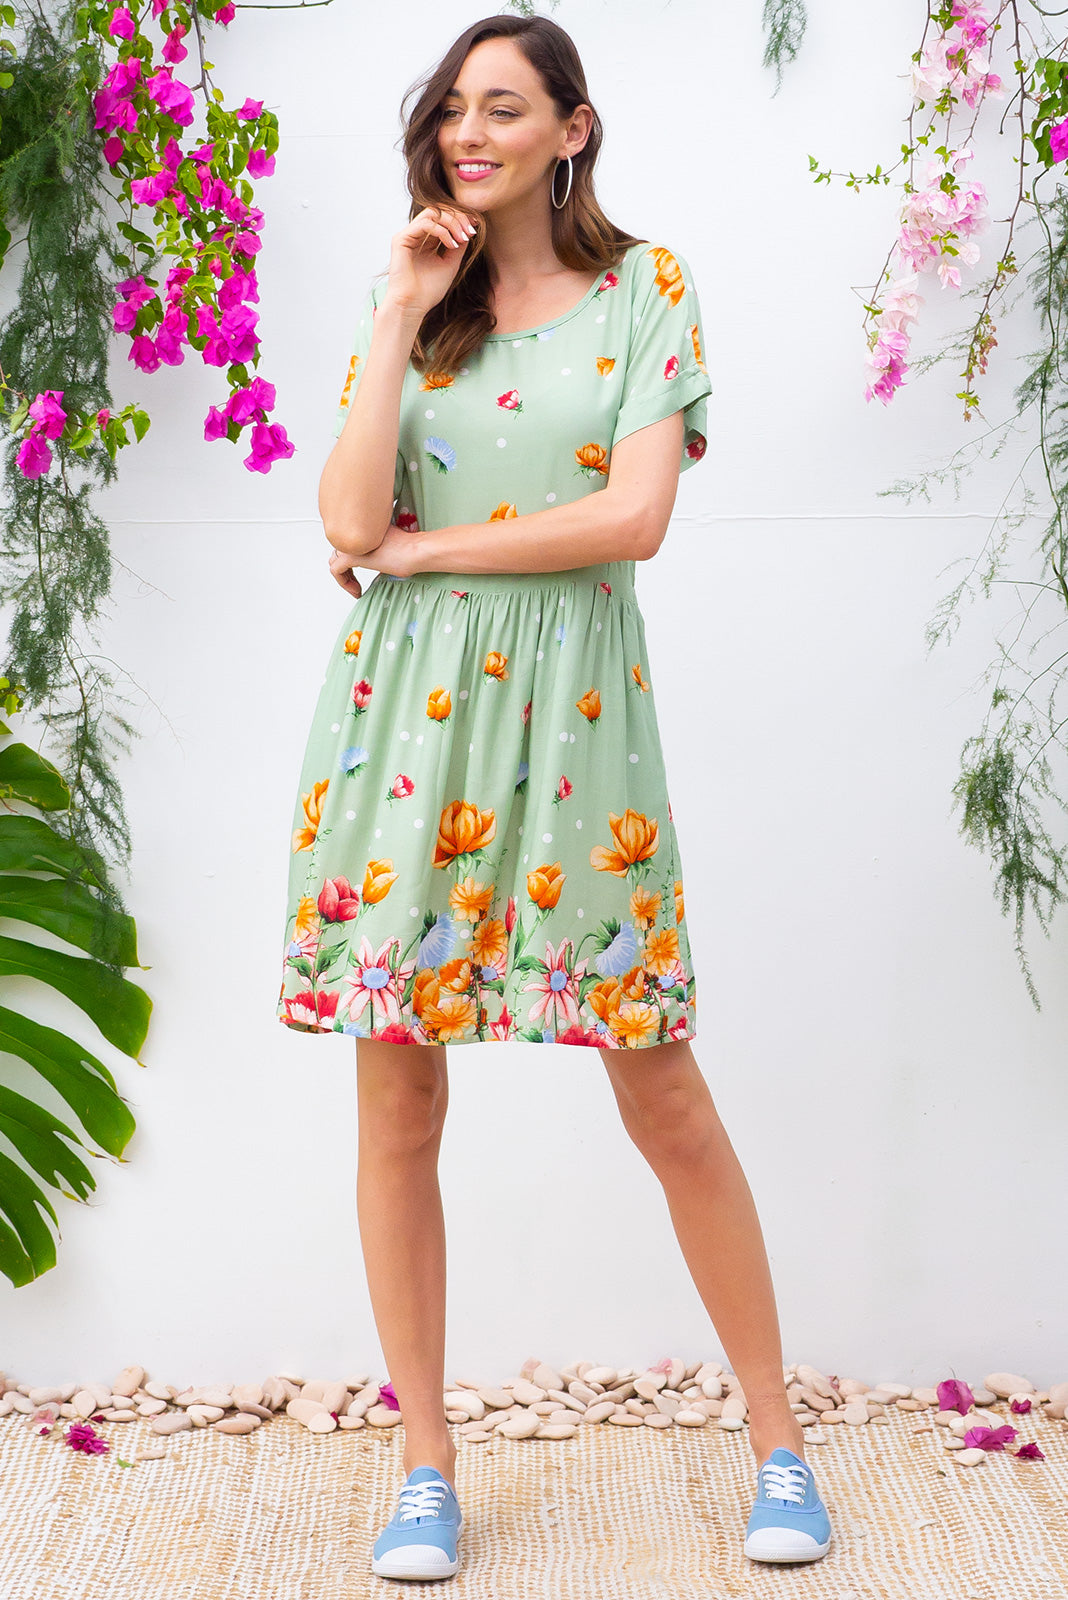 Blue Moon Greenland Dress has a easy to wear relaxed fit and features cuffed sleeves, button tabs at the waist and comes in a beautiful vibrant soft green floral border print on woven rayon